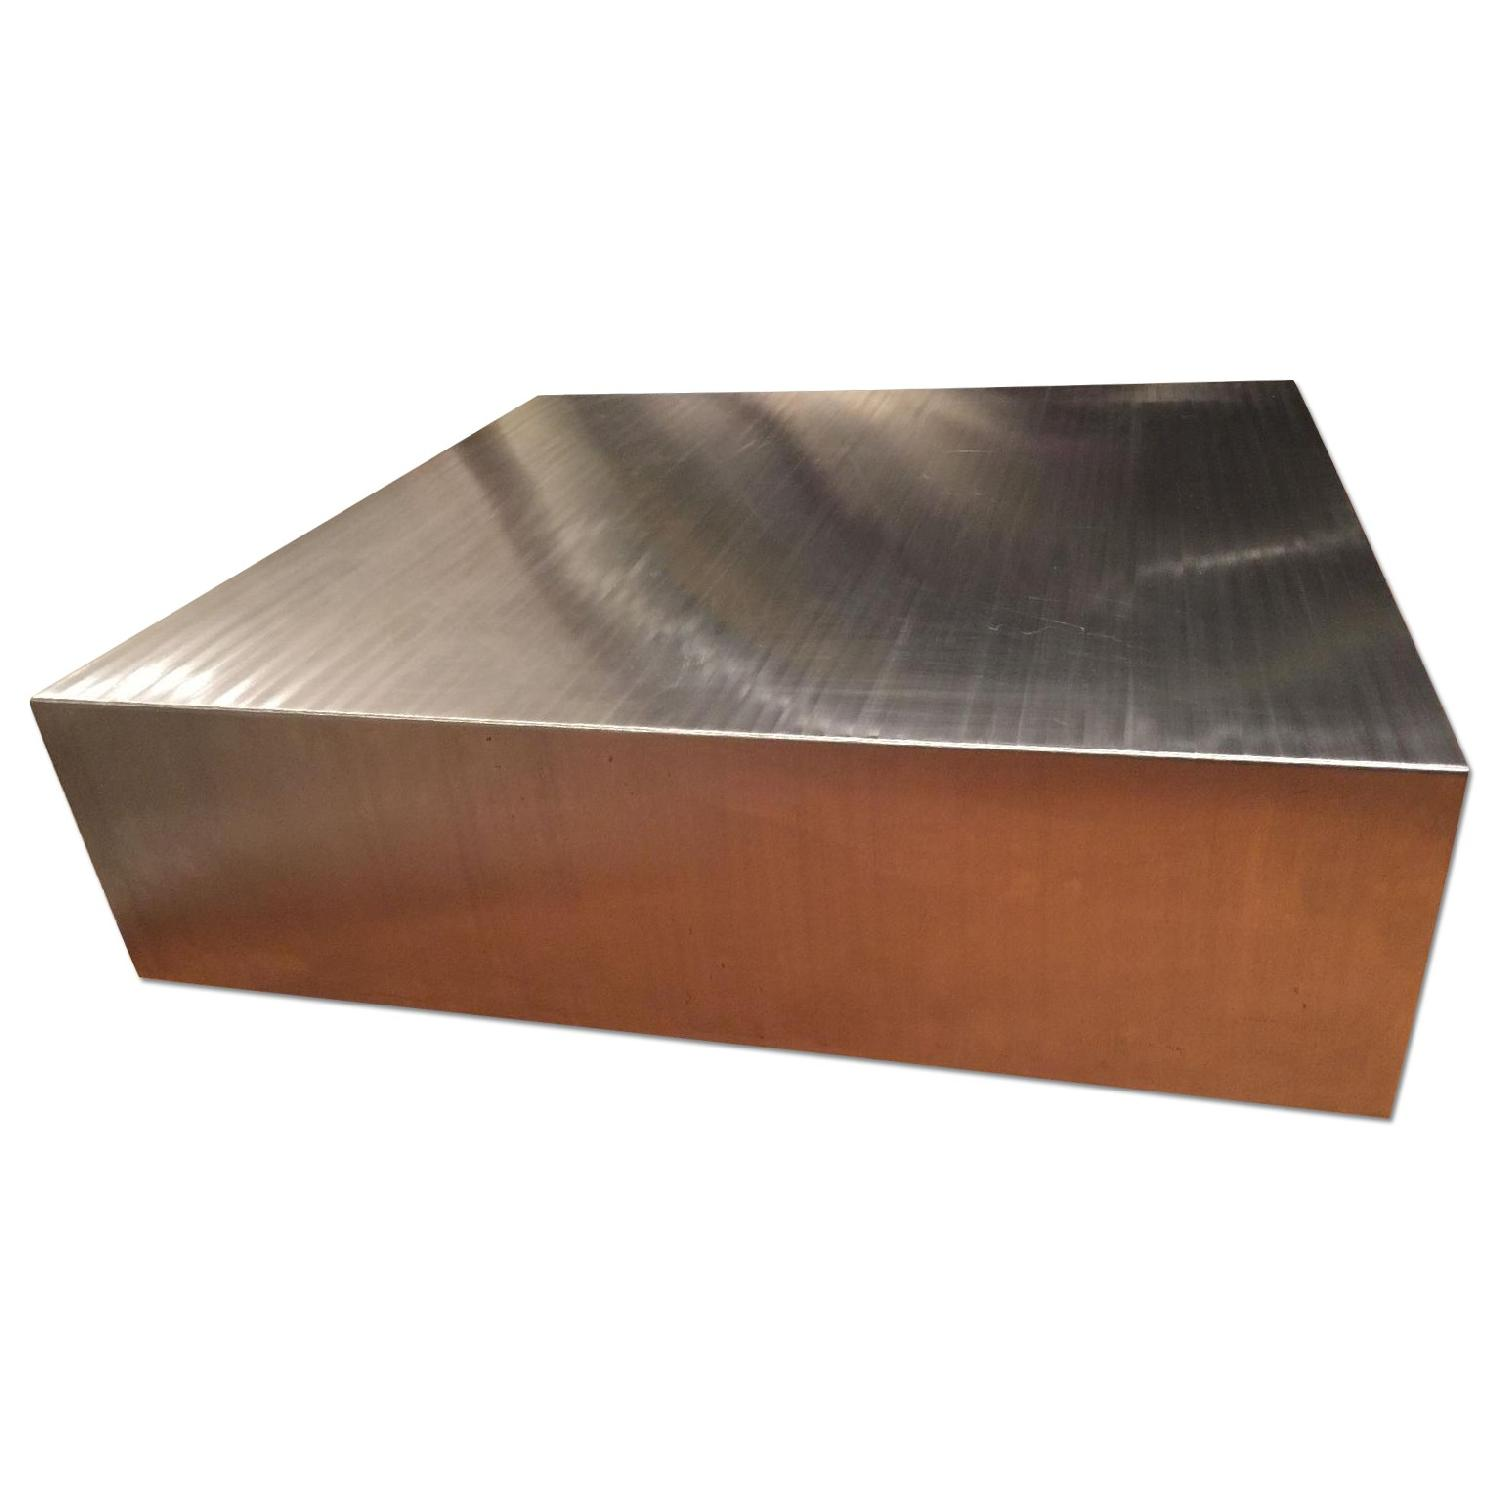 Industrial Brushed Stainless Steel Square Coffee Table - image-5